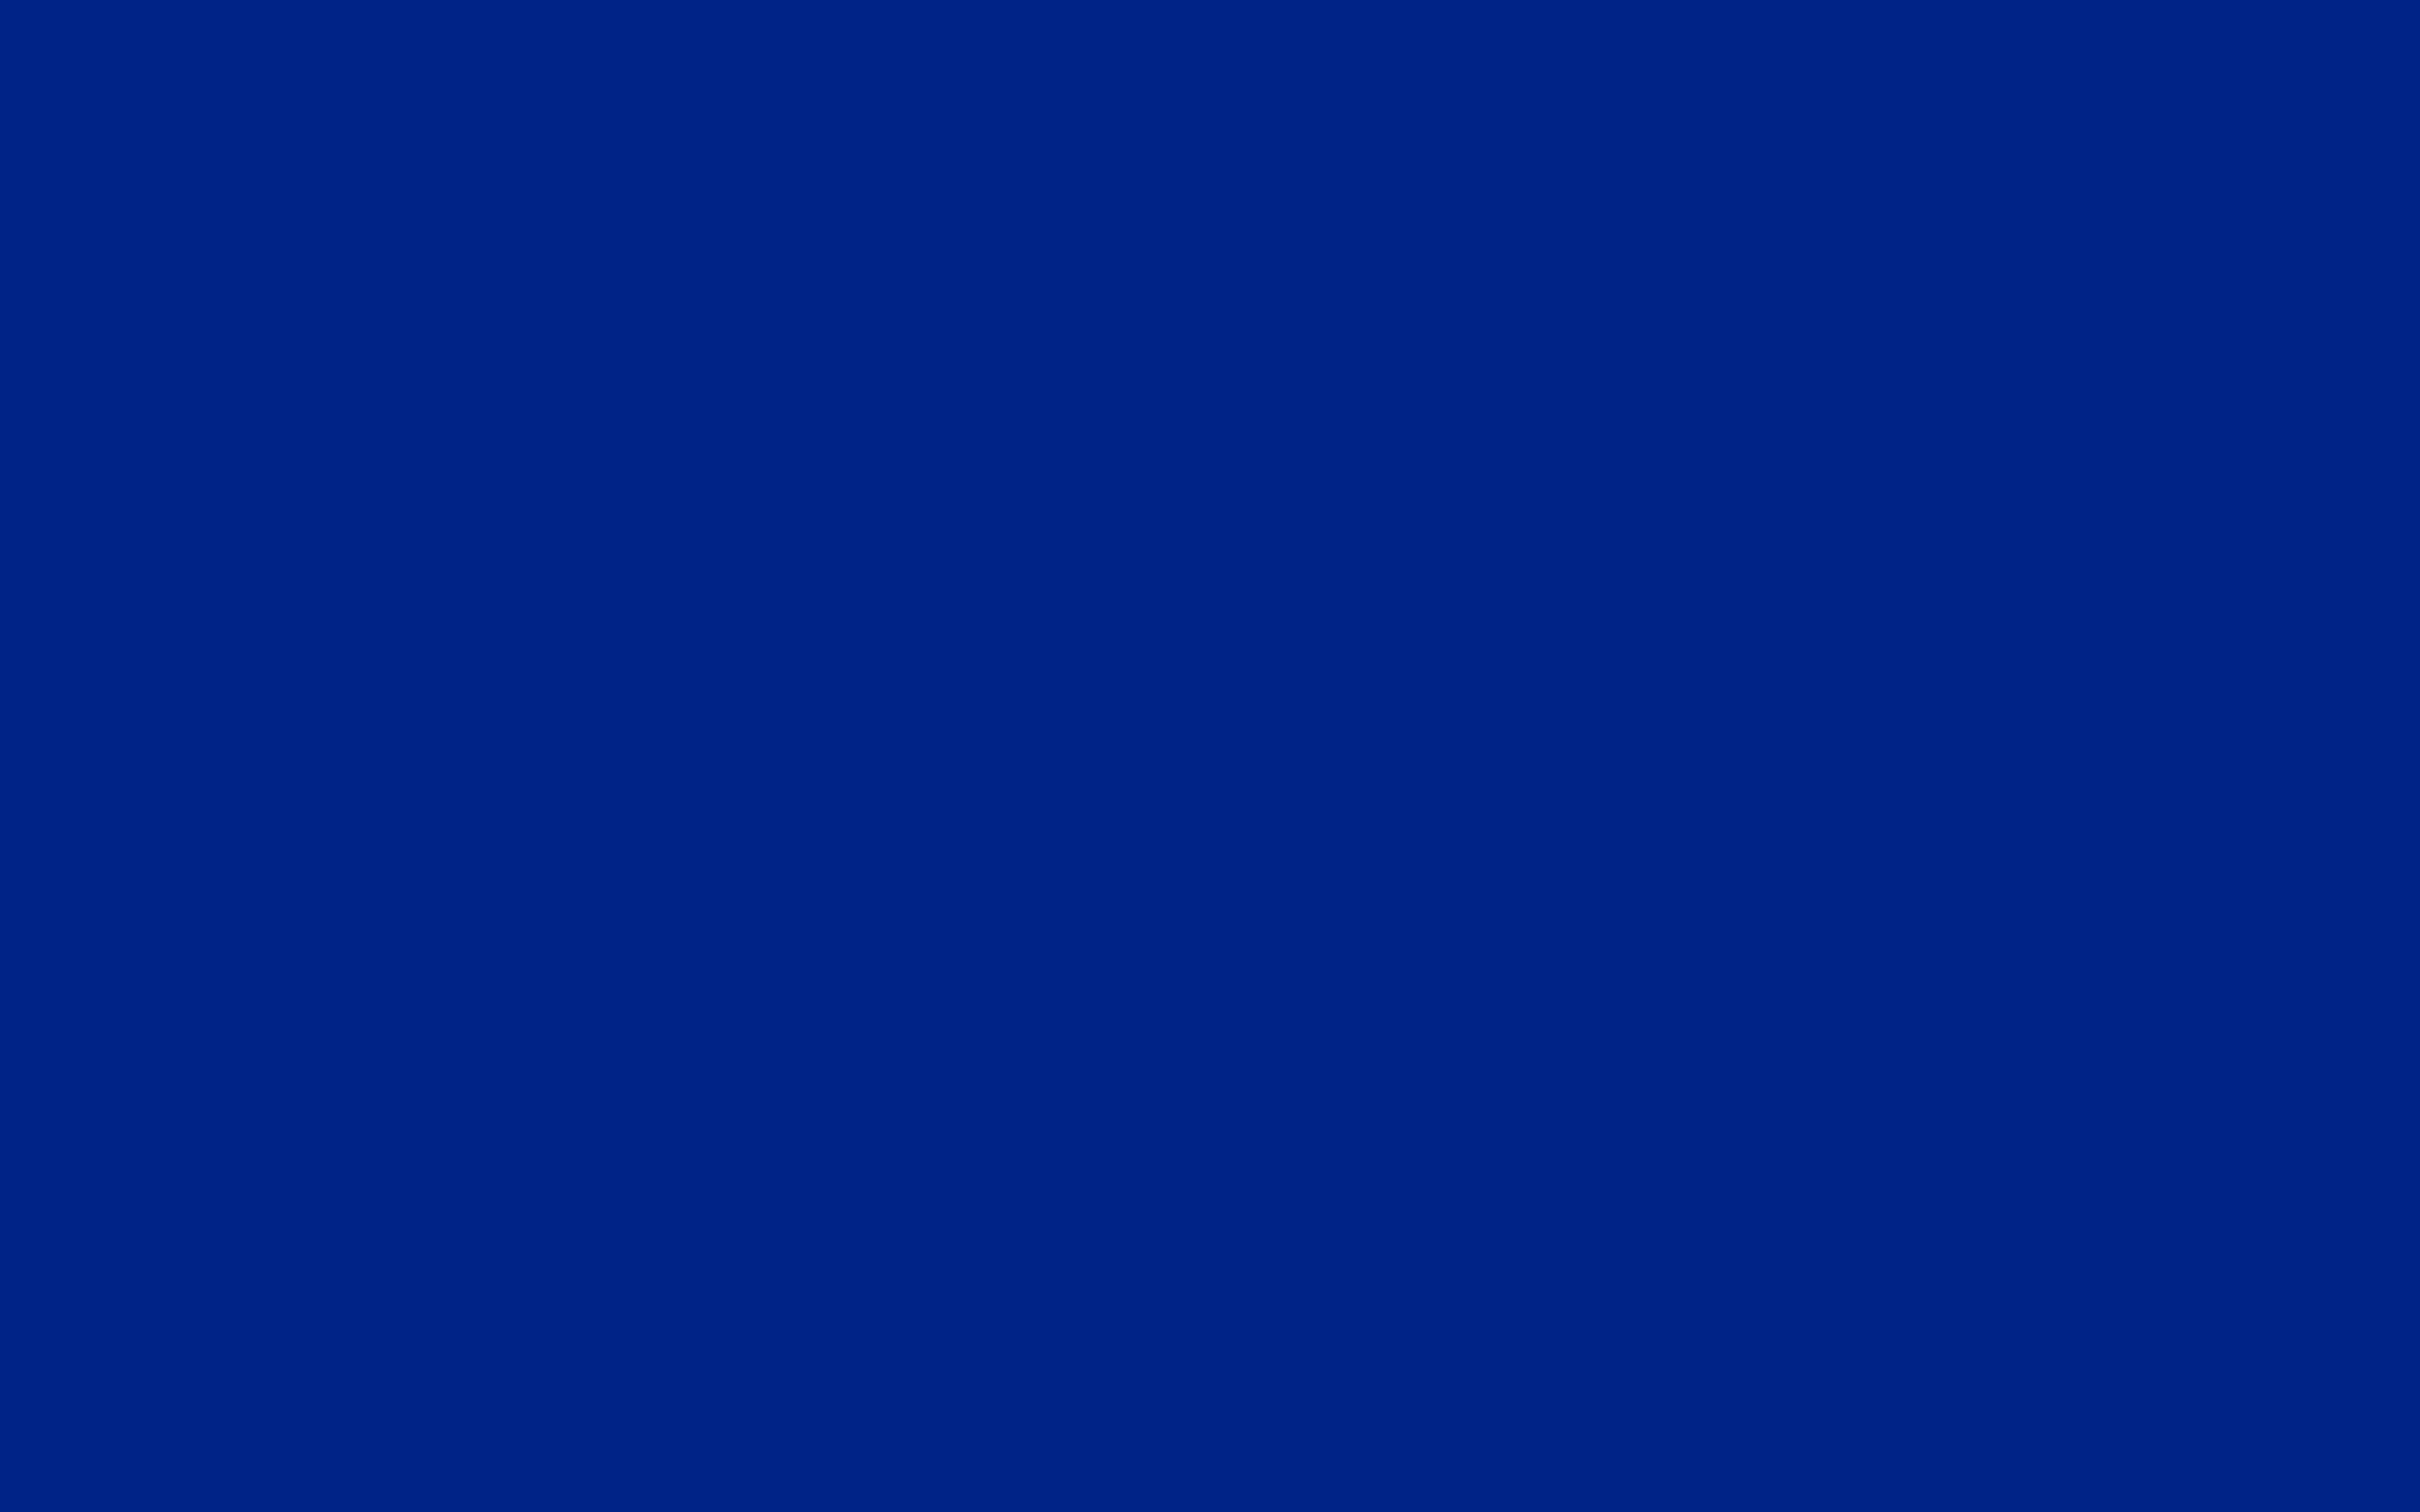 2880x1800 Resolution Blue Solid Color Background